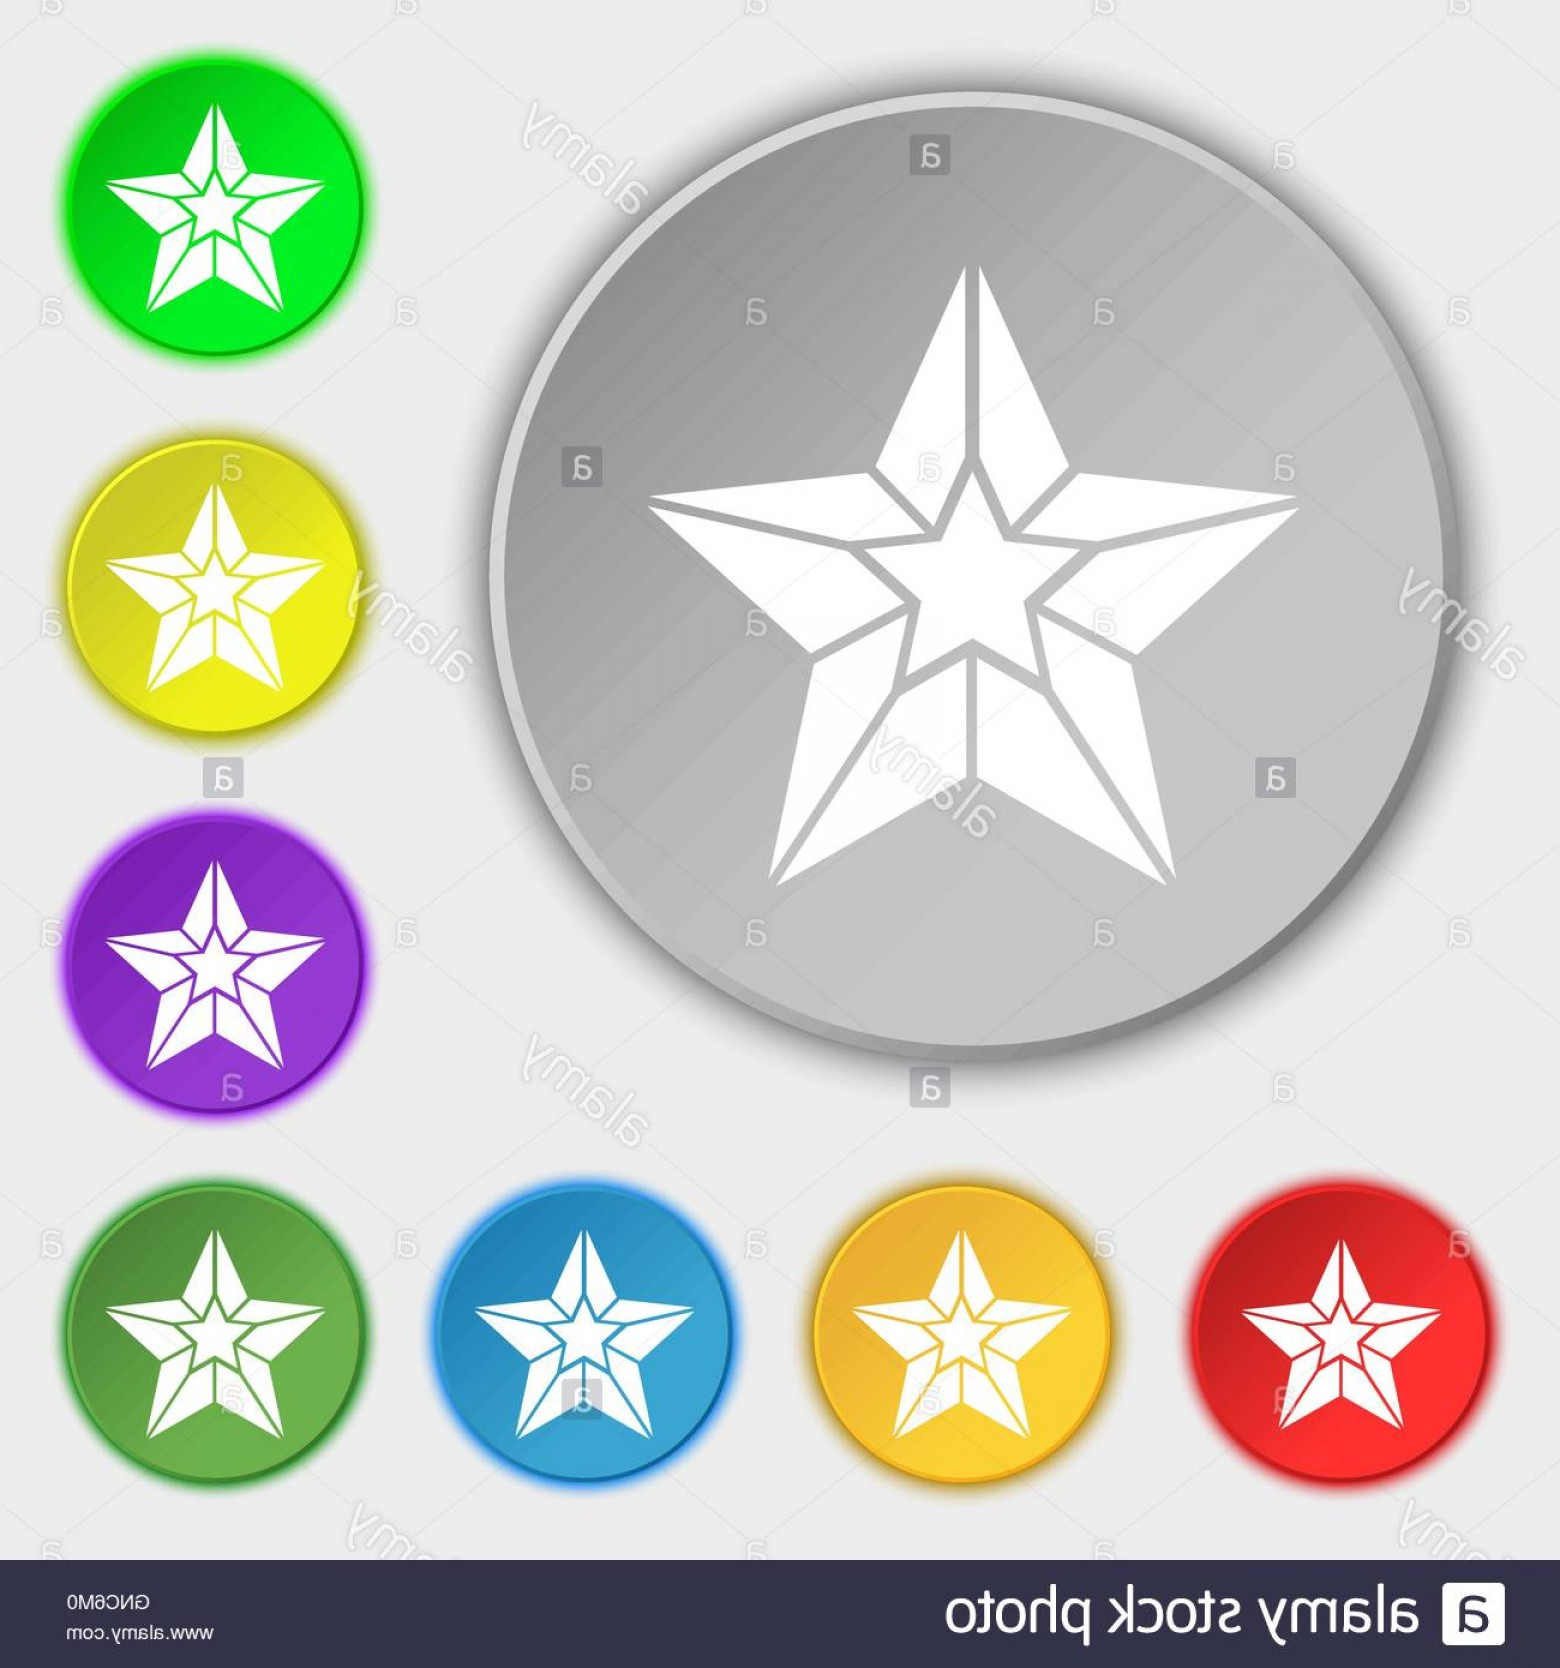 Buttons Vector Art: Stock Photo Star Icon Sign Symbol On Eight Flat Buttons Vector